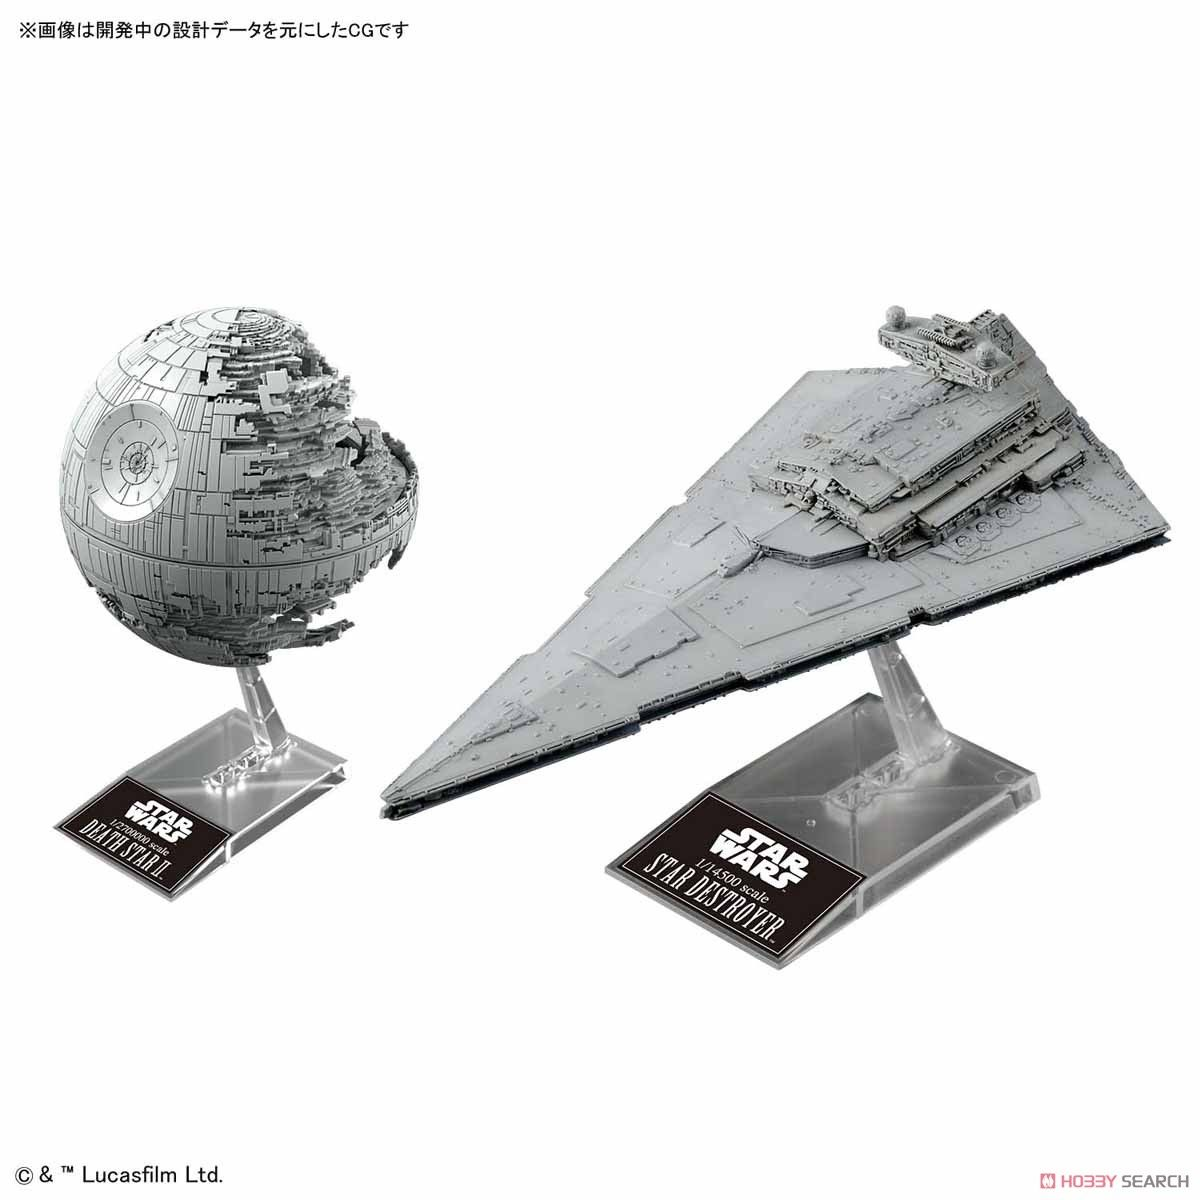 Bandai 0230358 Star Wars Death Star II & Star Destroyer